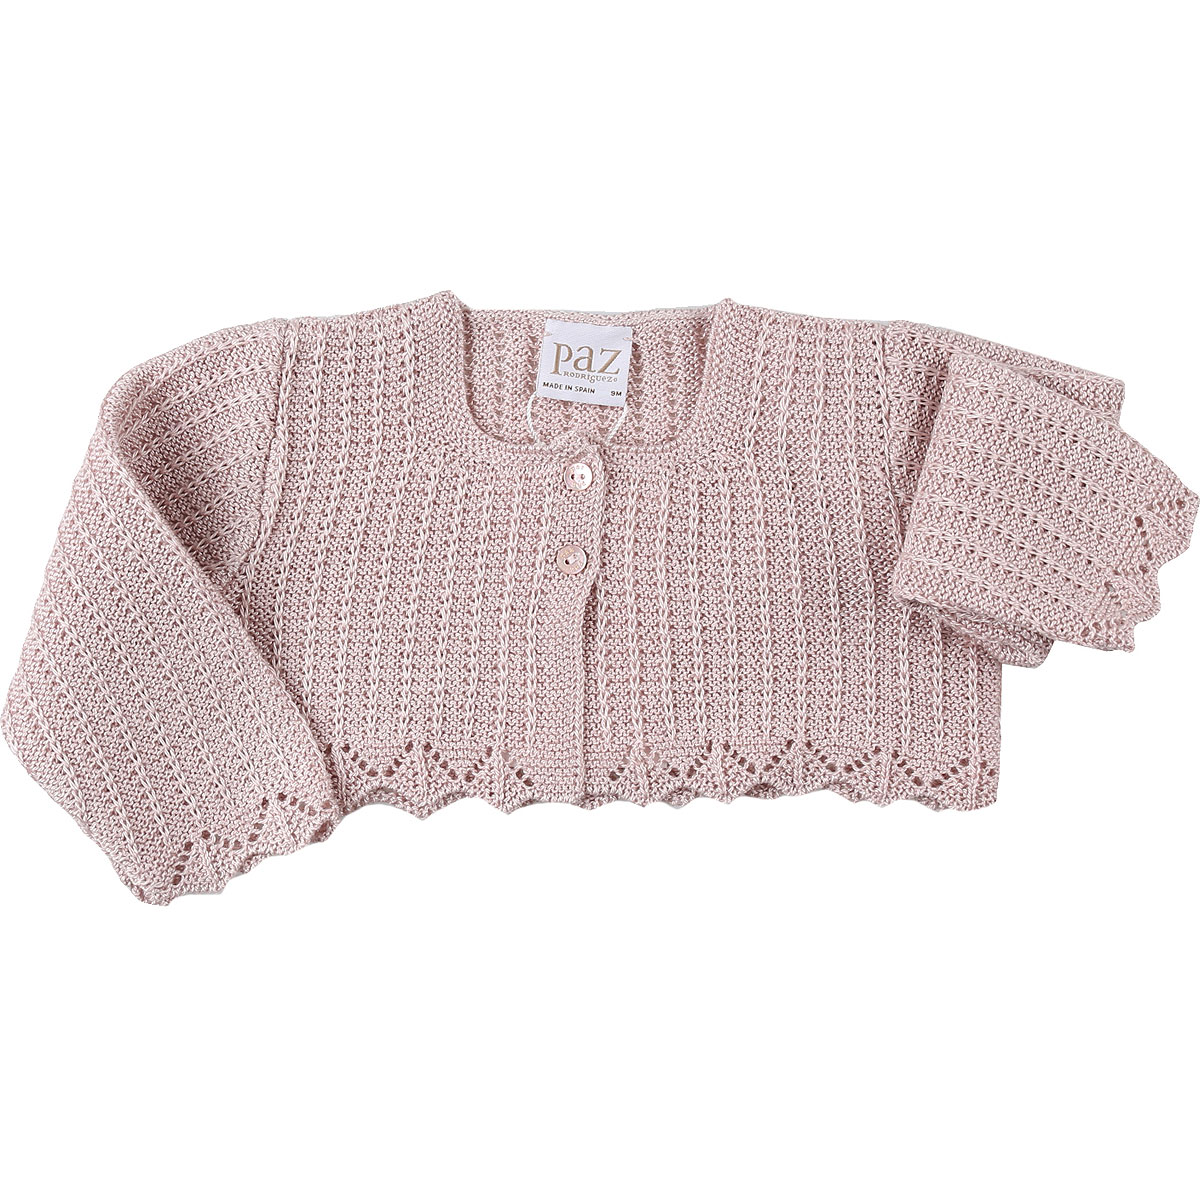 Paz Rodriguez Baby Sweaters for Girls On Sale, Antic Rose, Cotton, 2019, 6M 9M